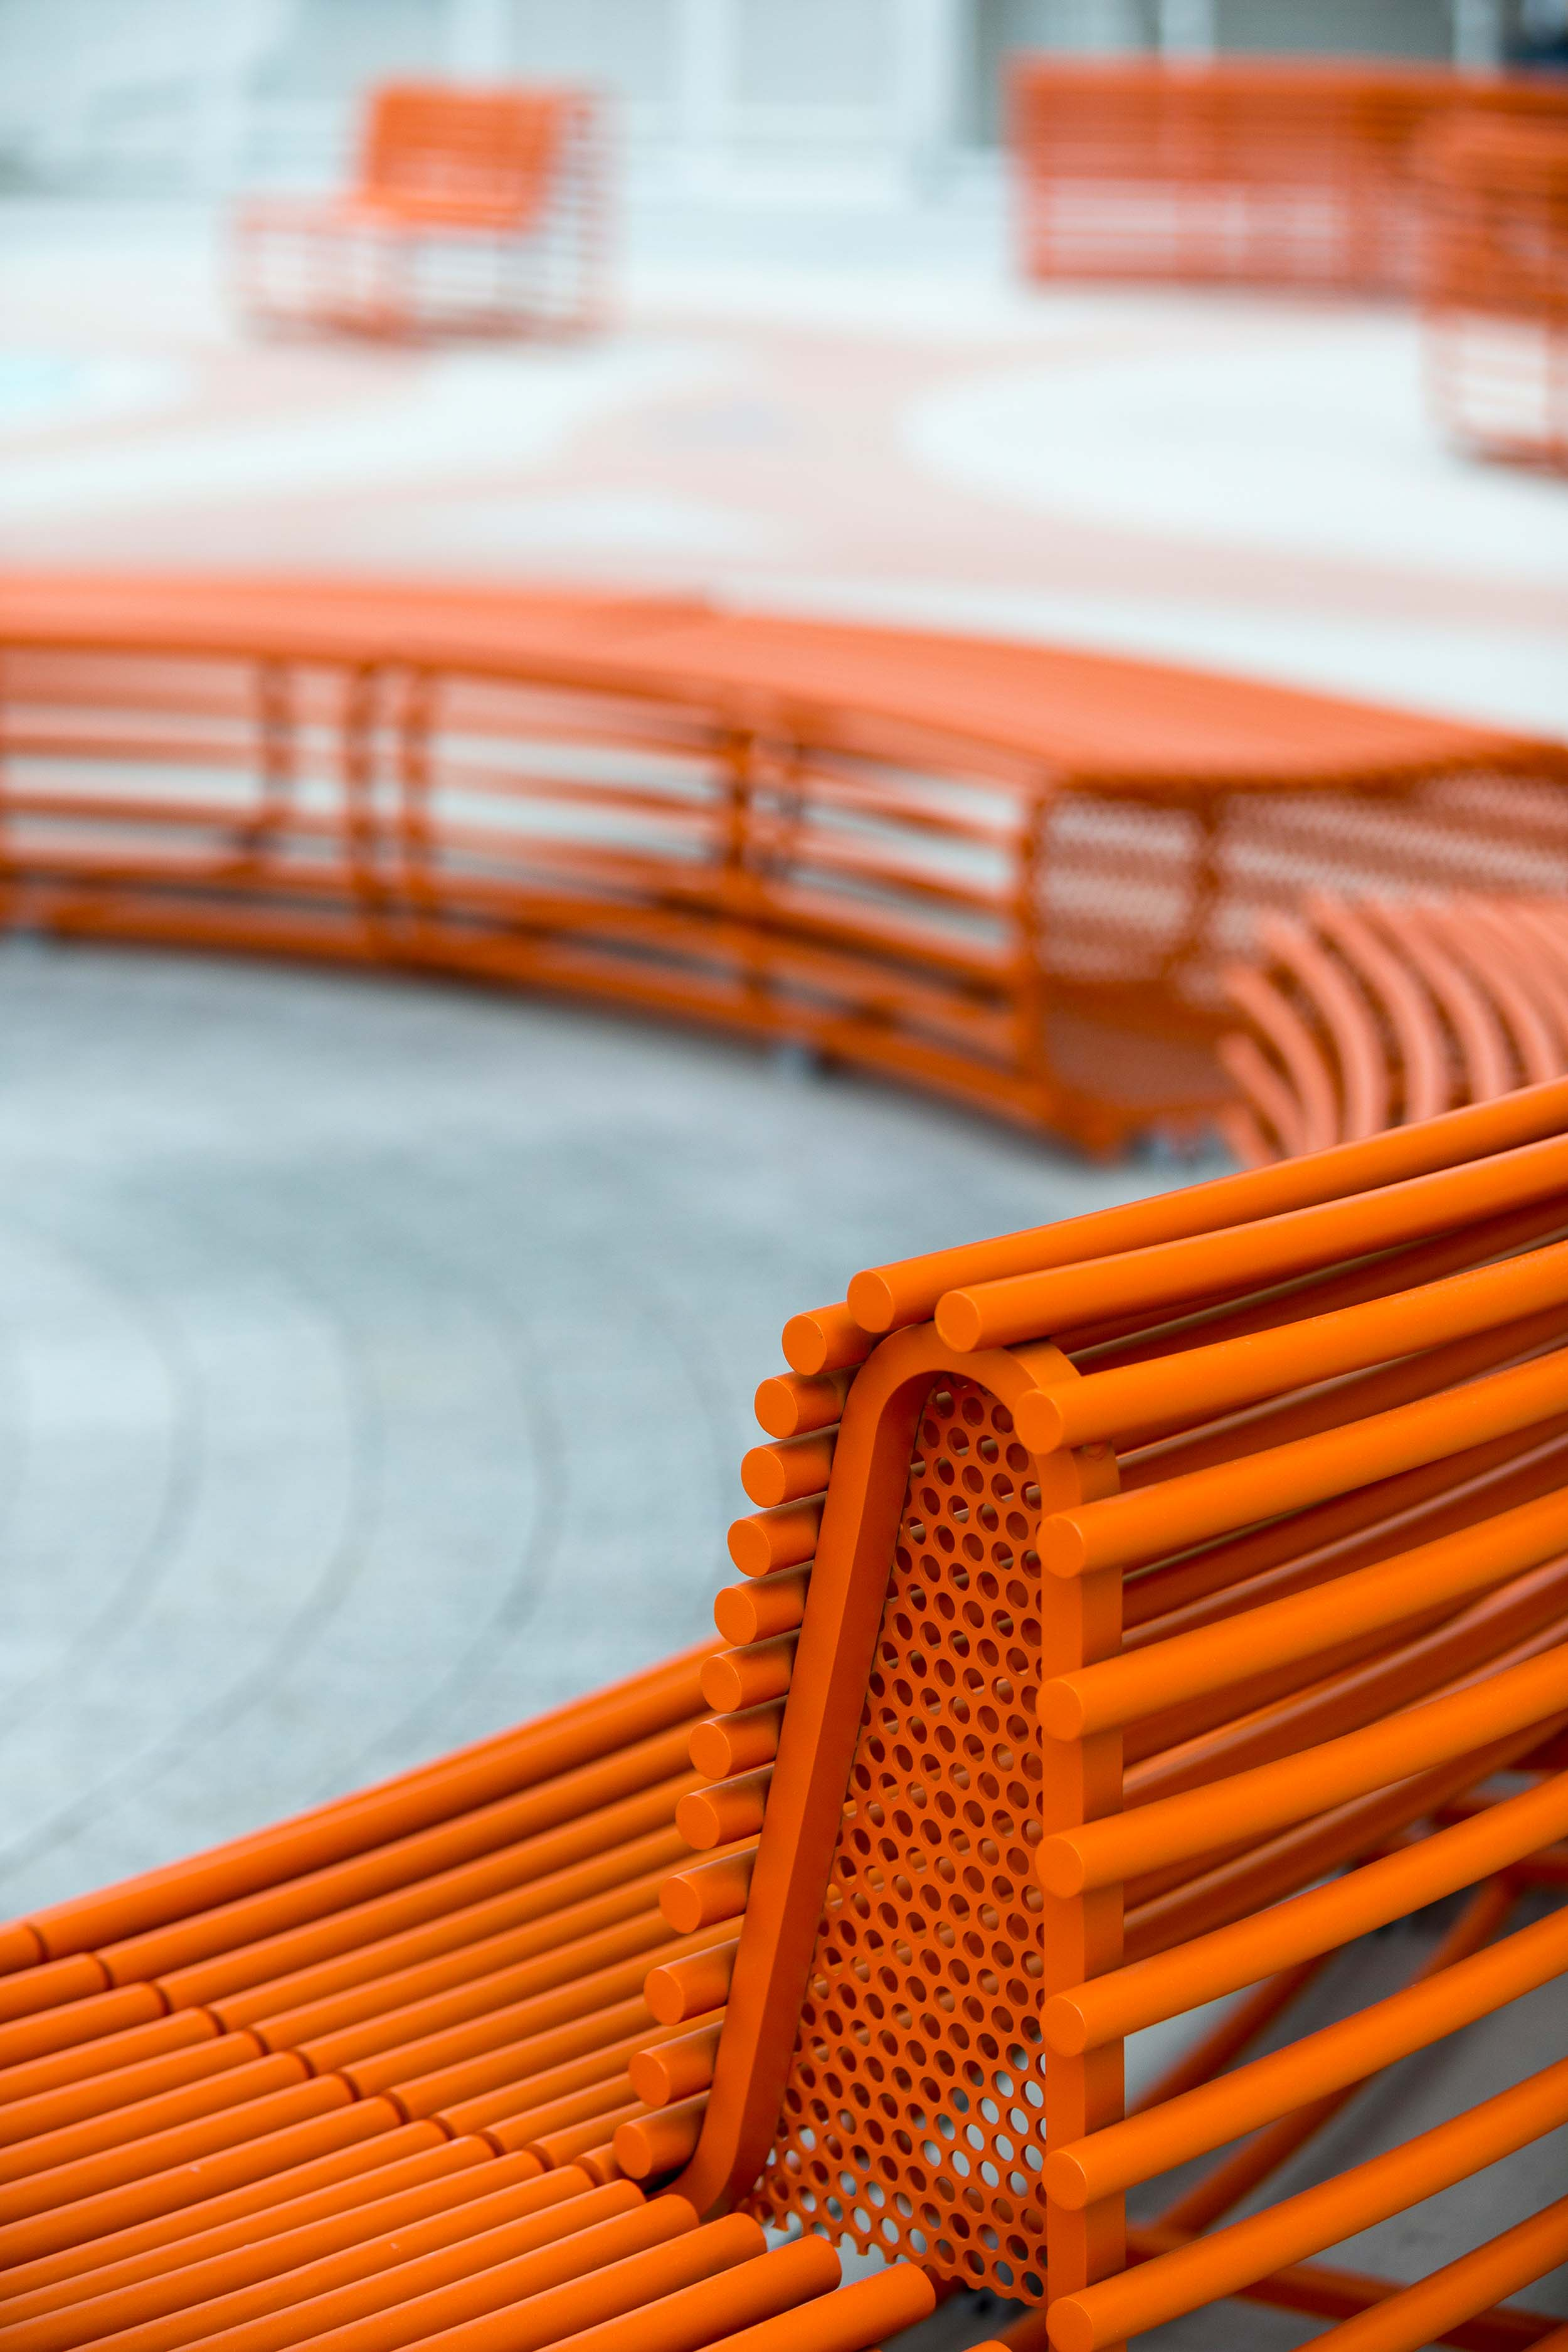 The orange RIO bench was designed by RIOS for Tysons Corner